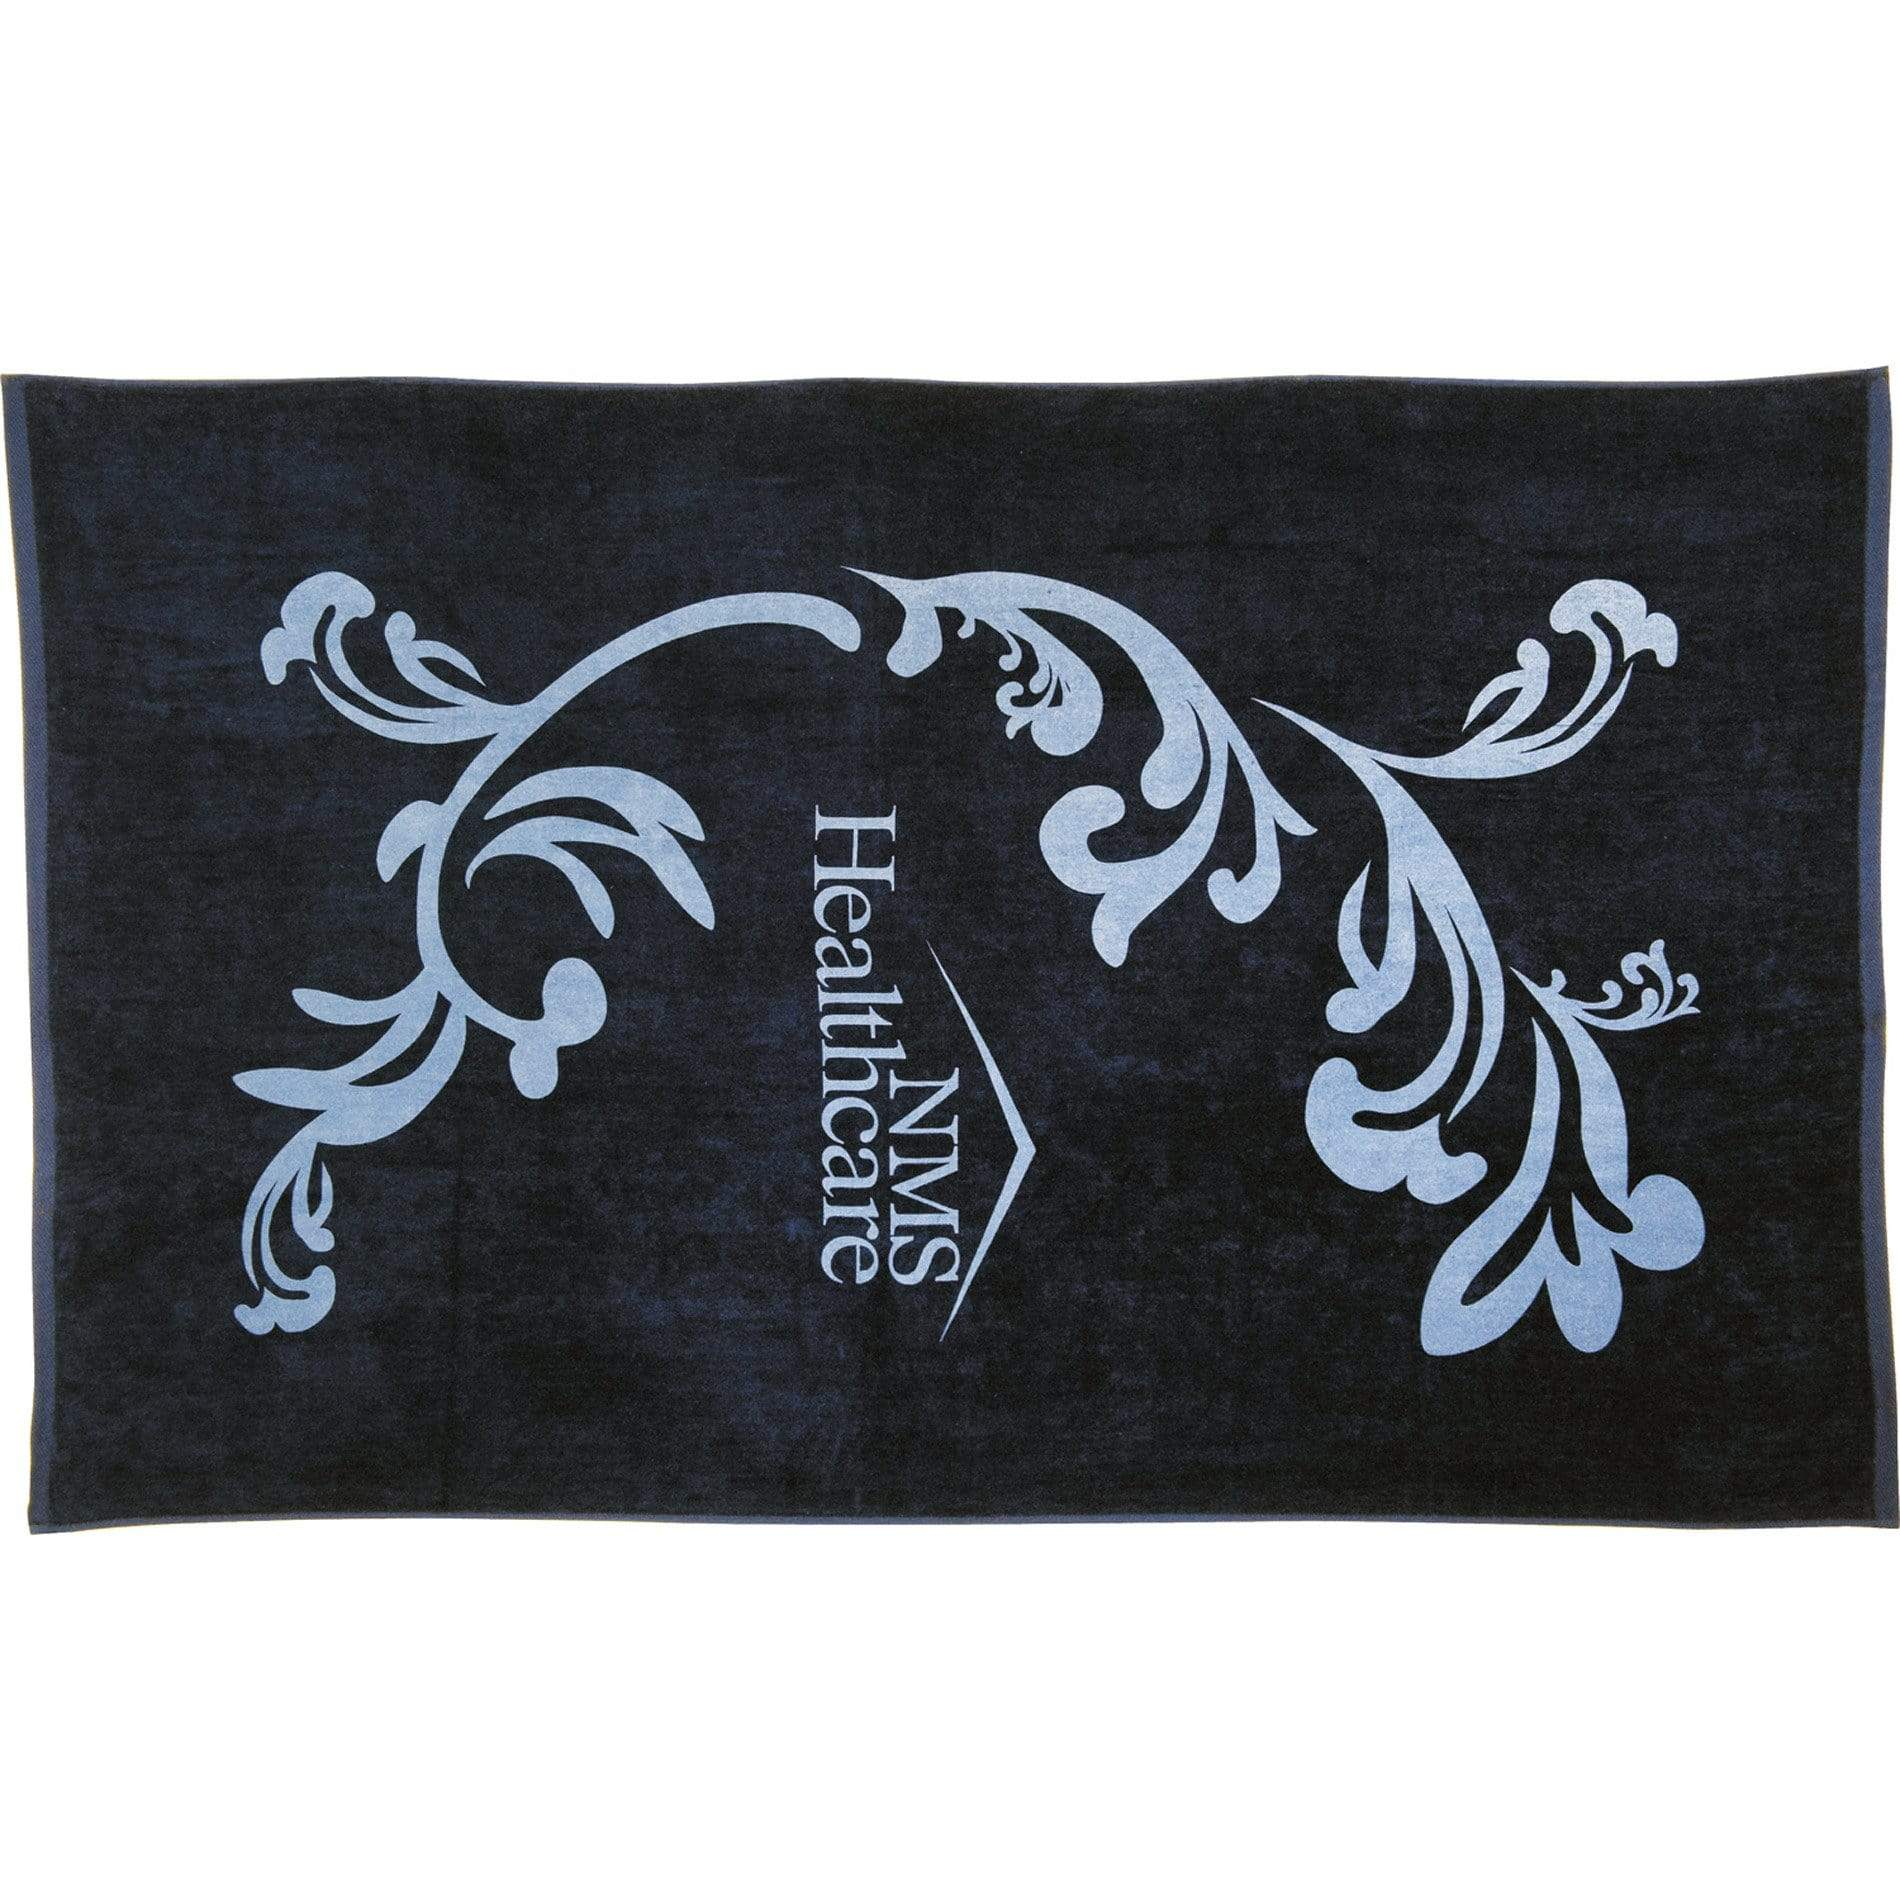 "Protowels Accessories 30"" x 60"" / Black Cotton Beach Towel - 30″ x 60″"